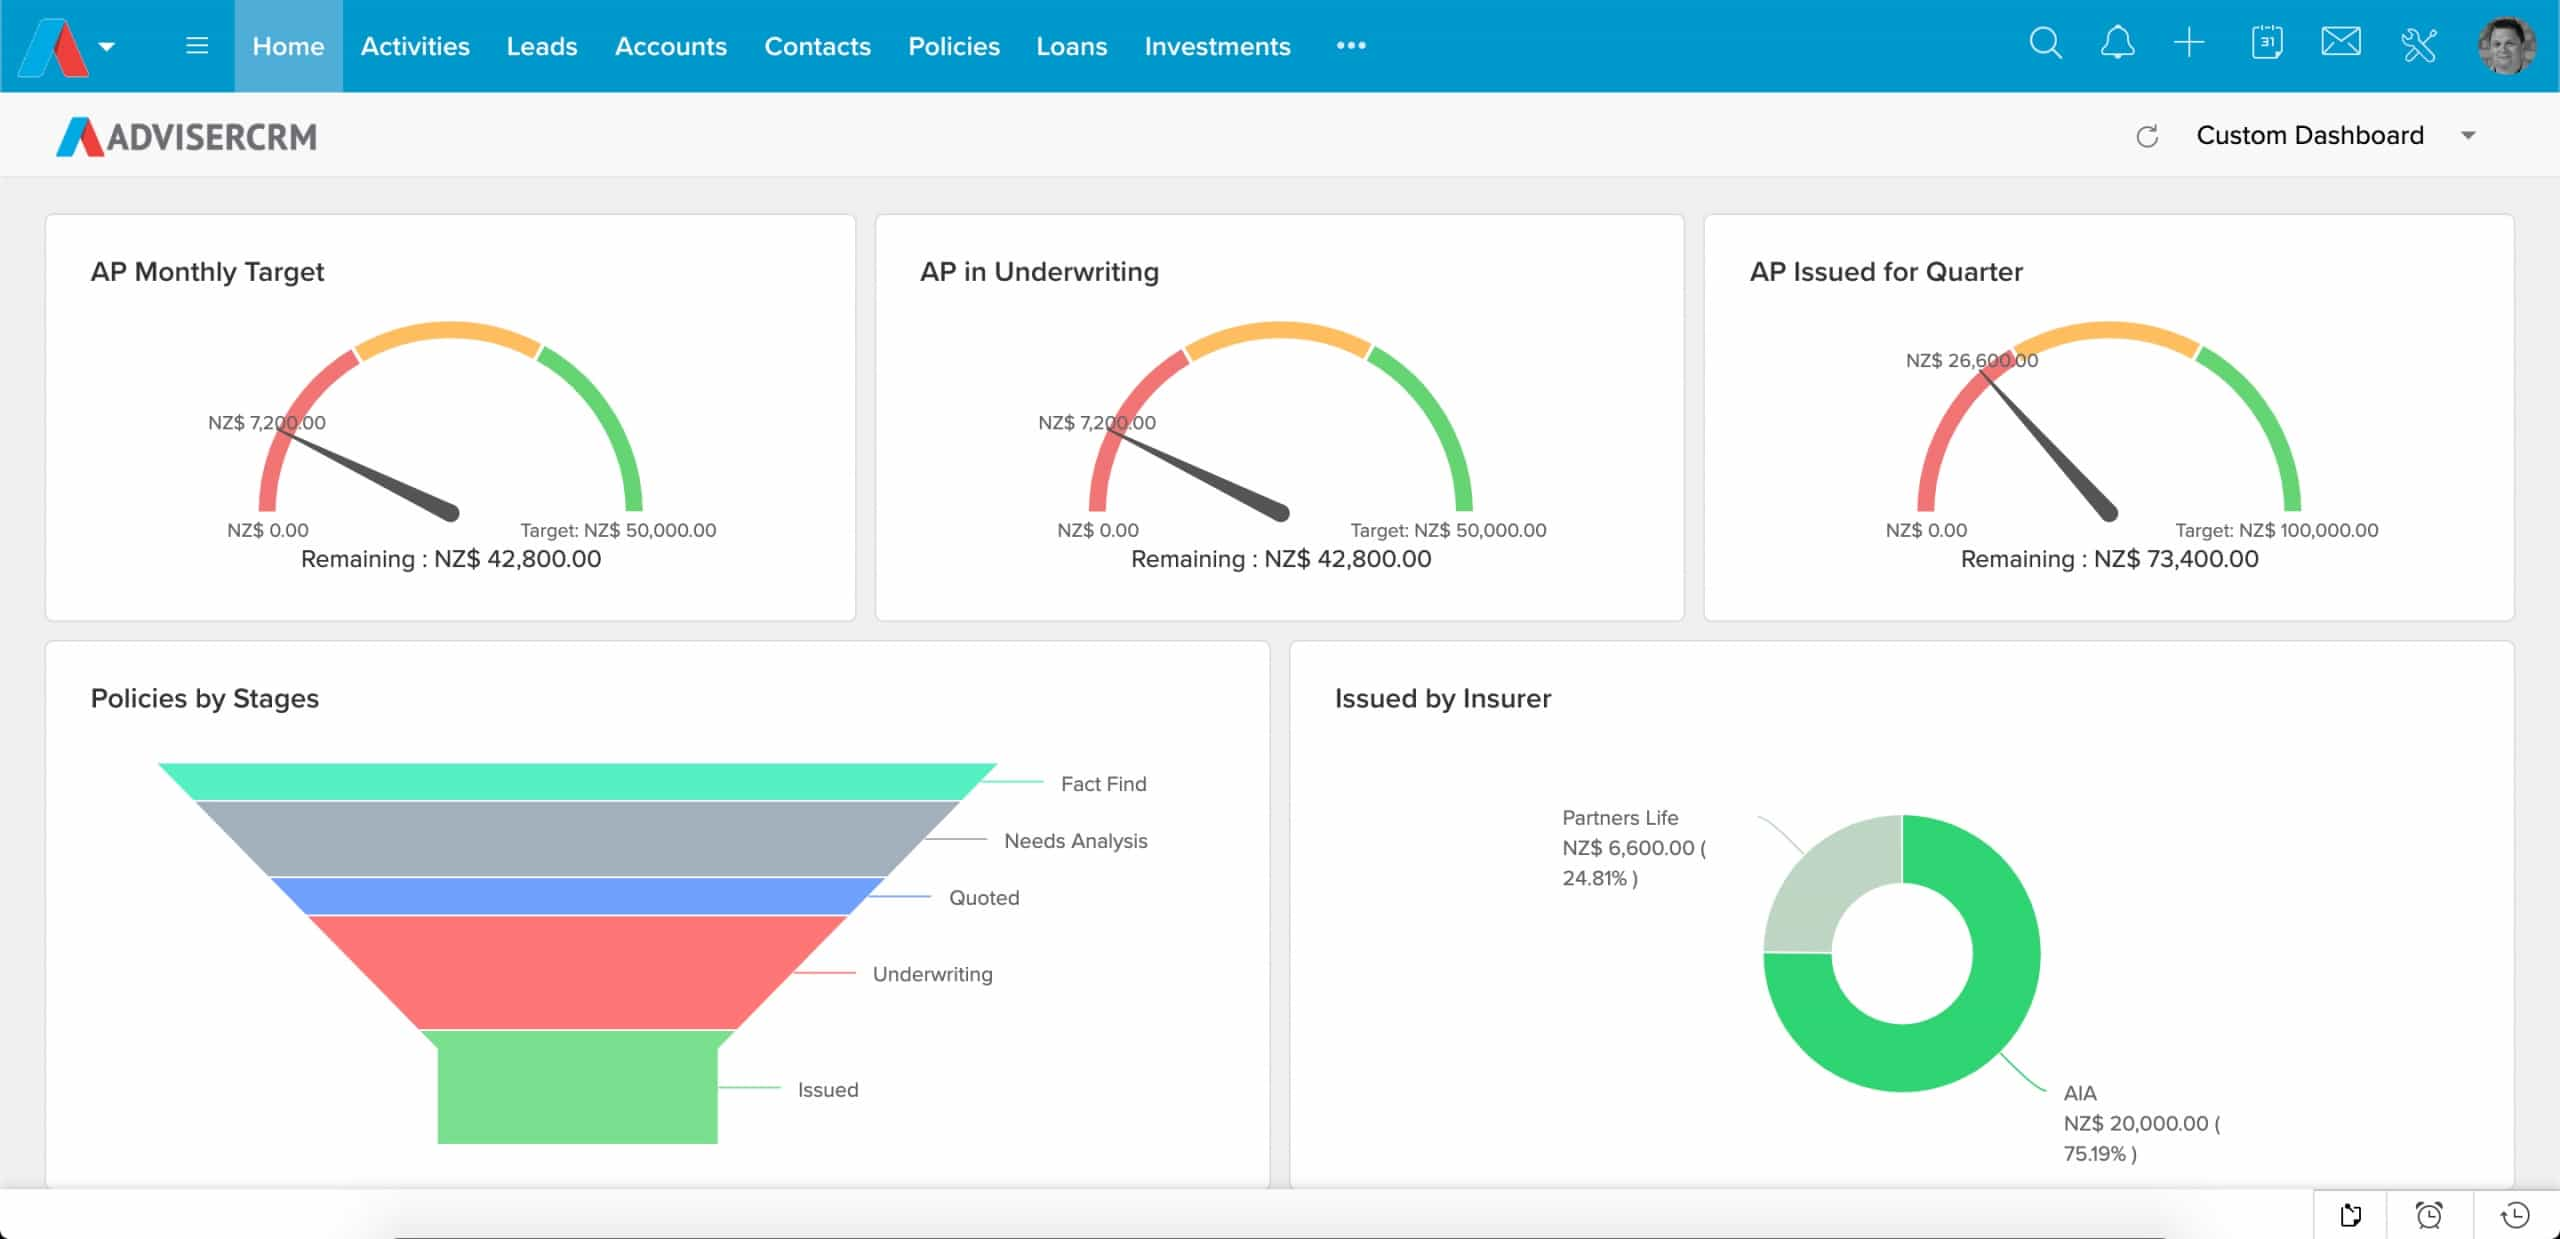 adviser crm homepage dashboard